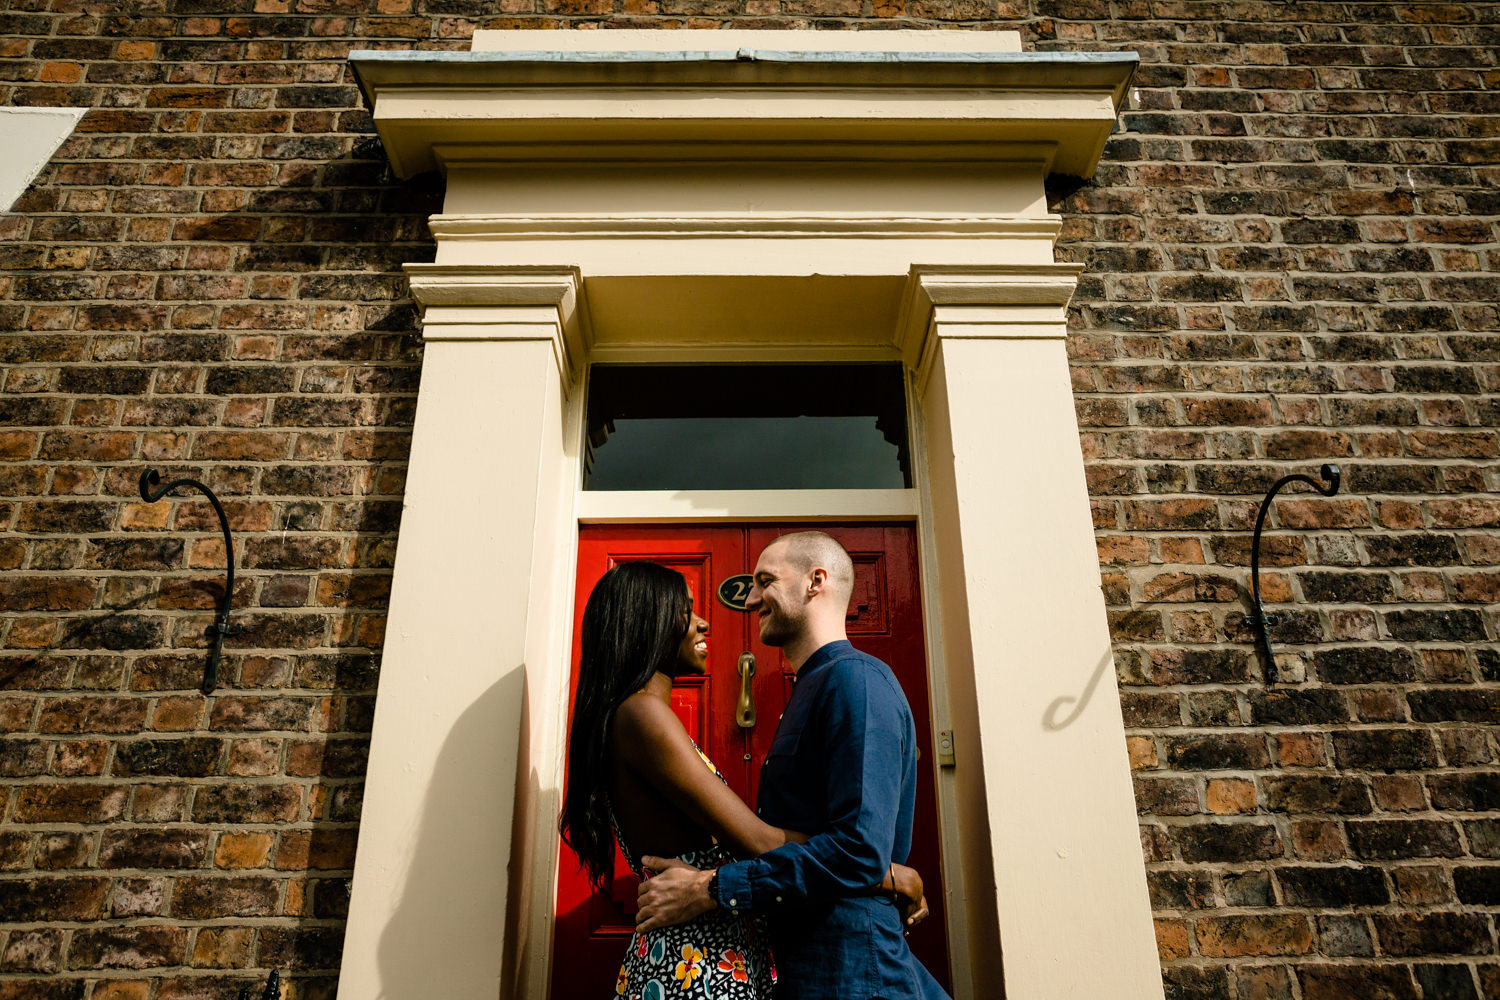 colourful-creative-pre-wedding-shoot-georgian-quarter-liverpool-08.jpg